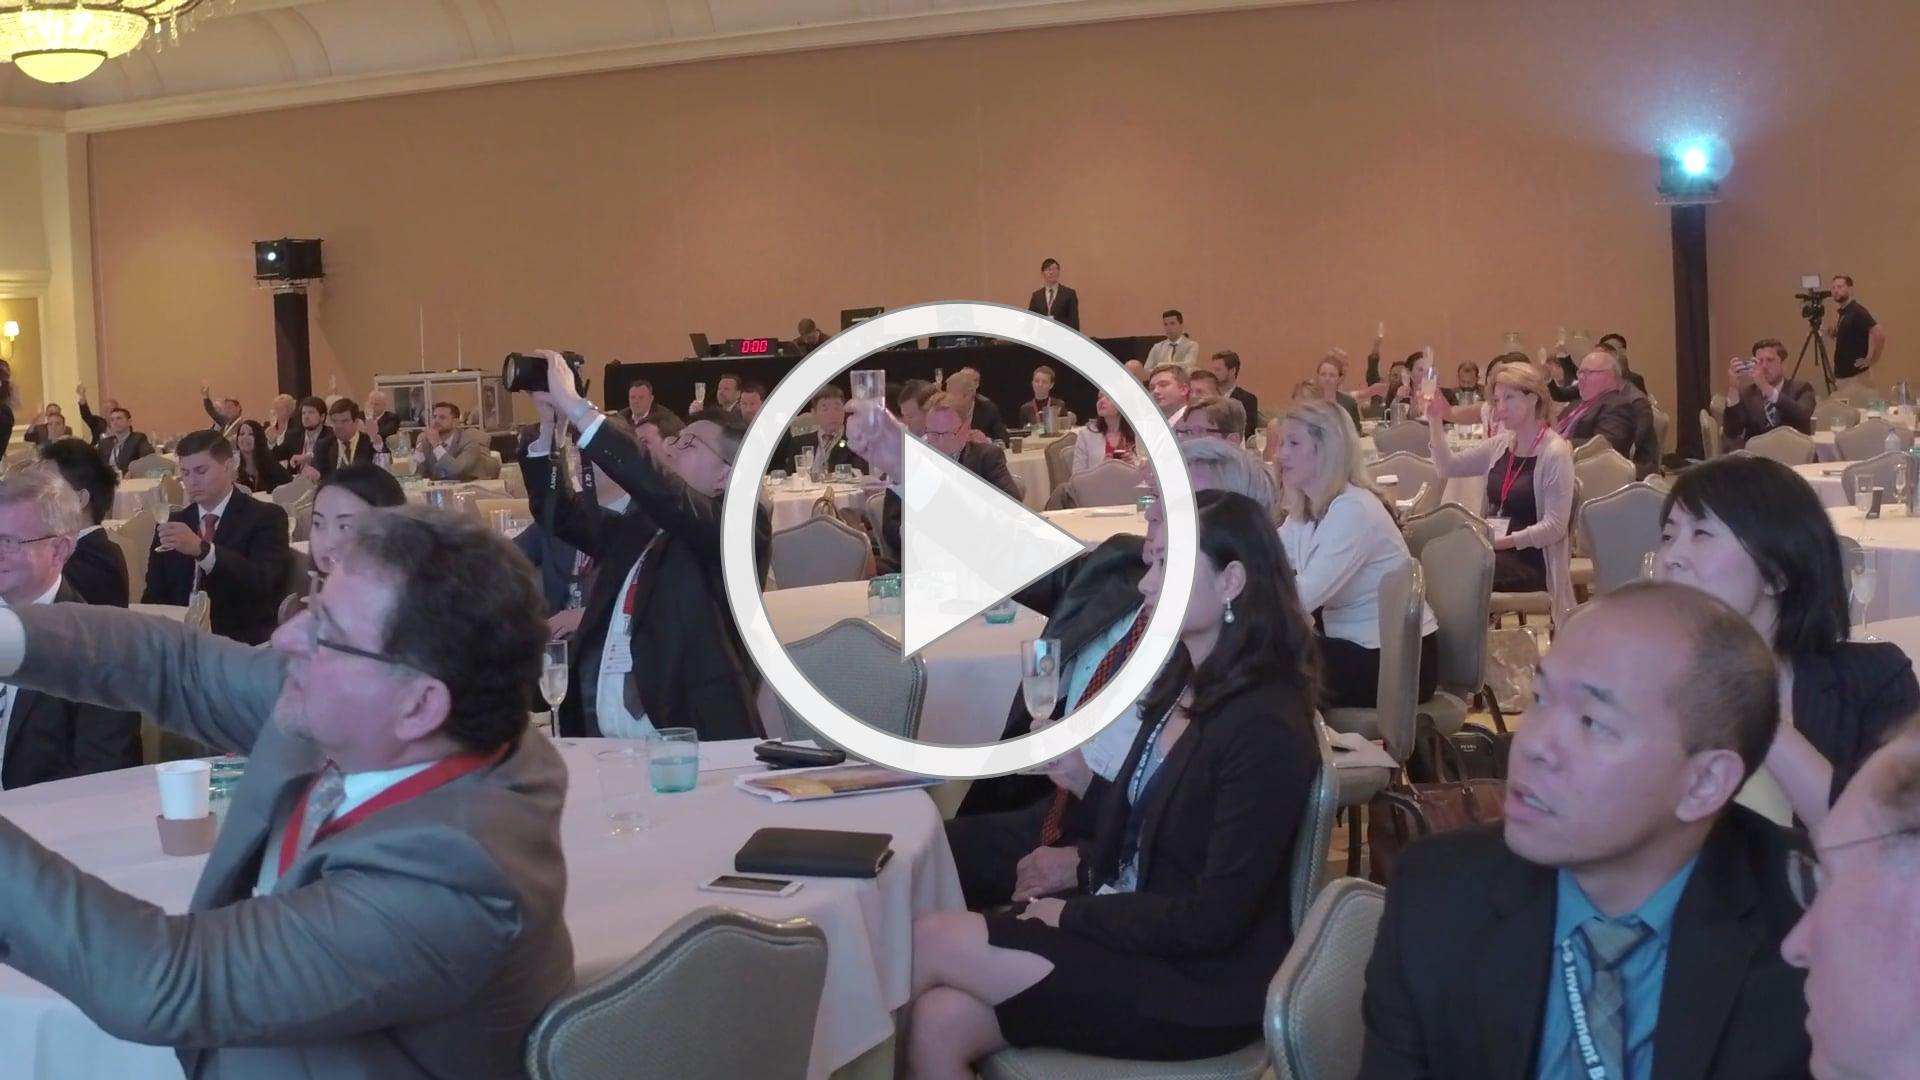 IIUSA EB-5 Industry Forum Photo Albums and Video Now Available!